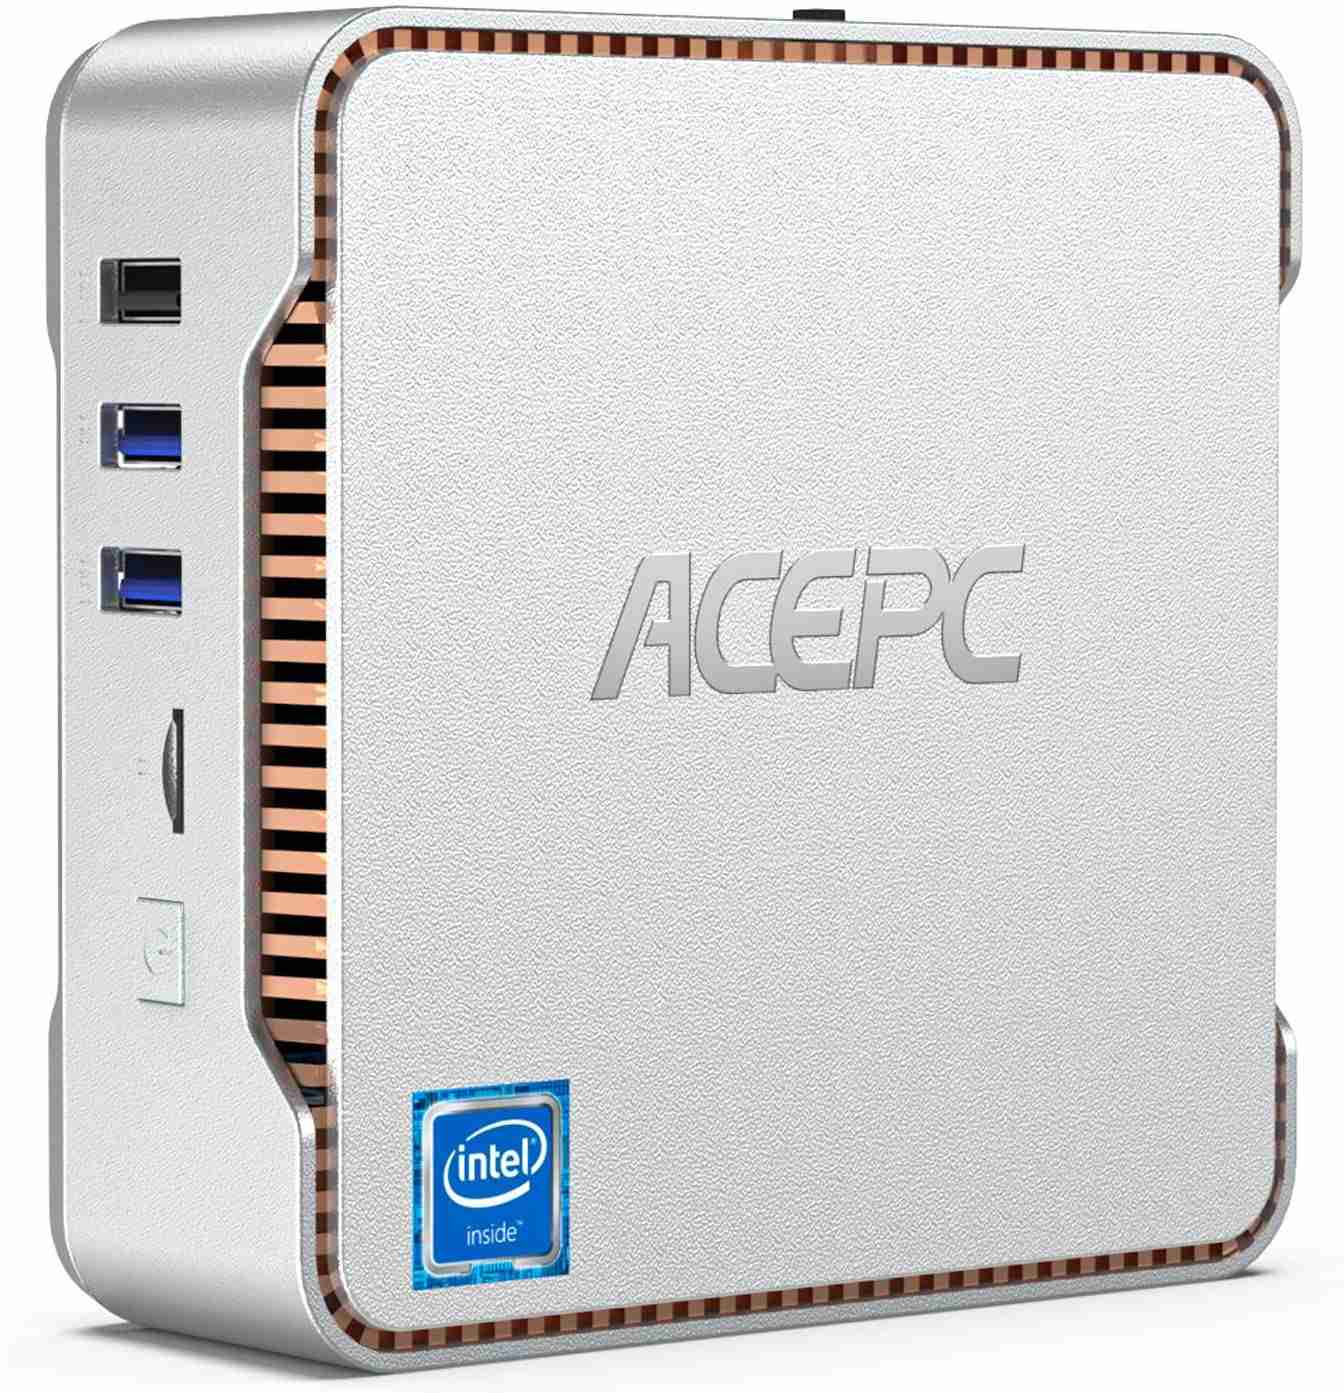 ACEPC GK3V Mini PC